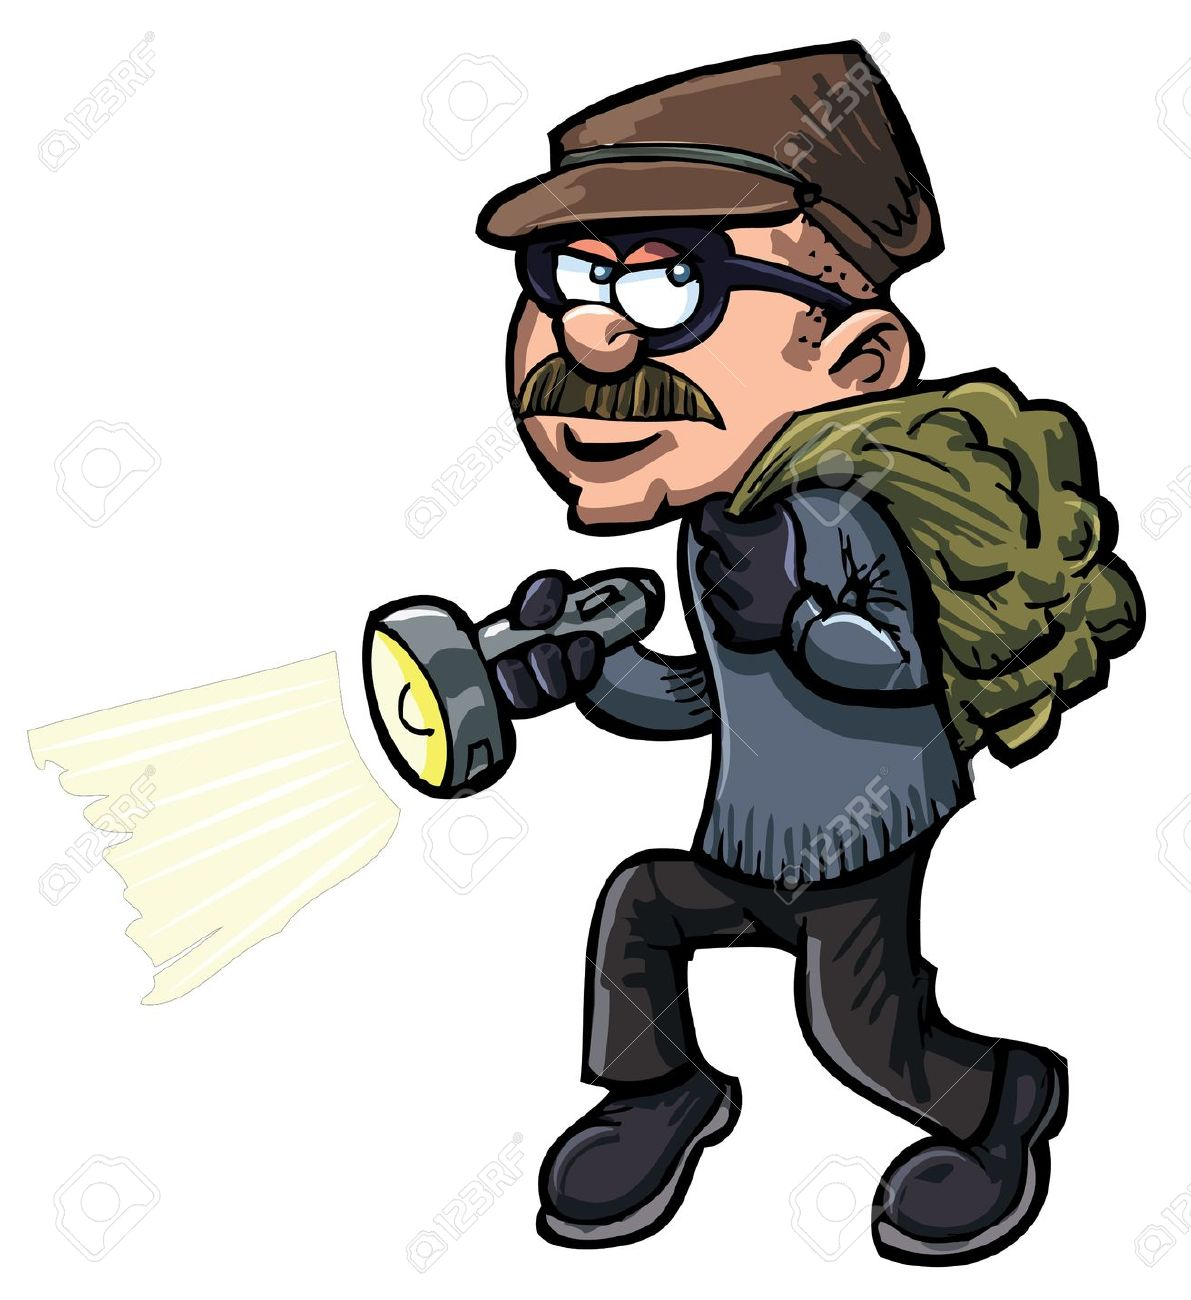 2 clipart robber.